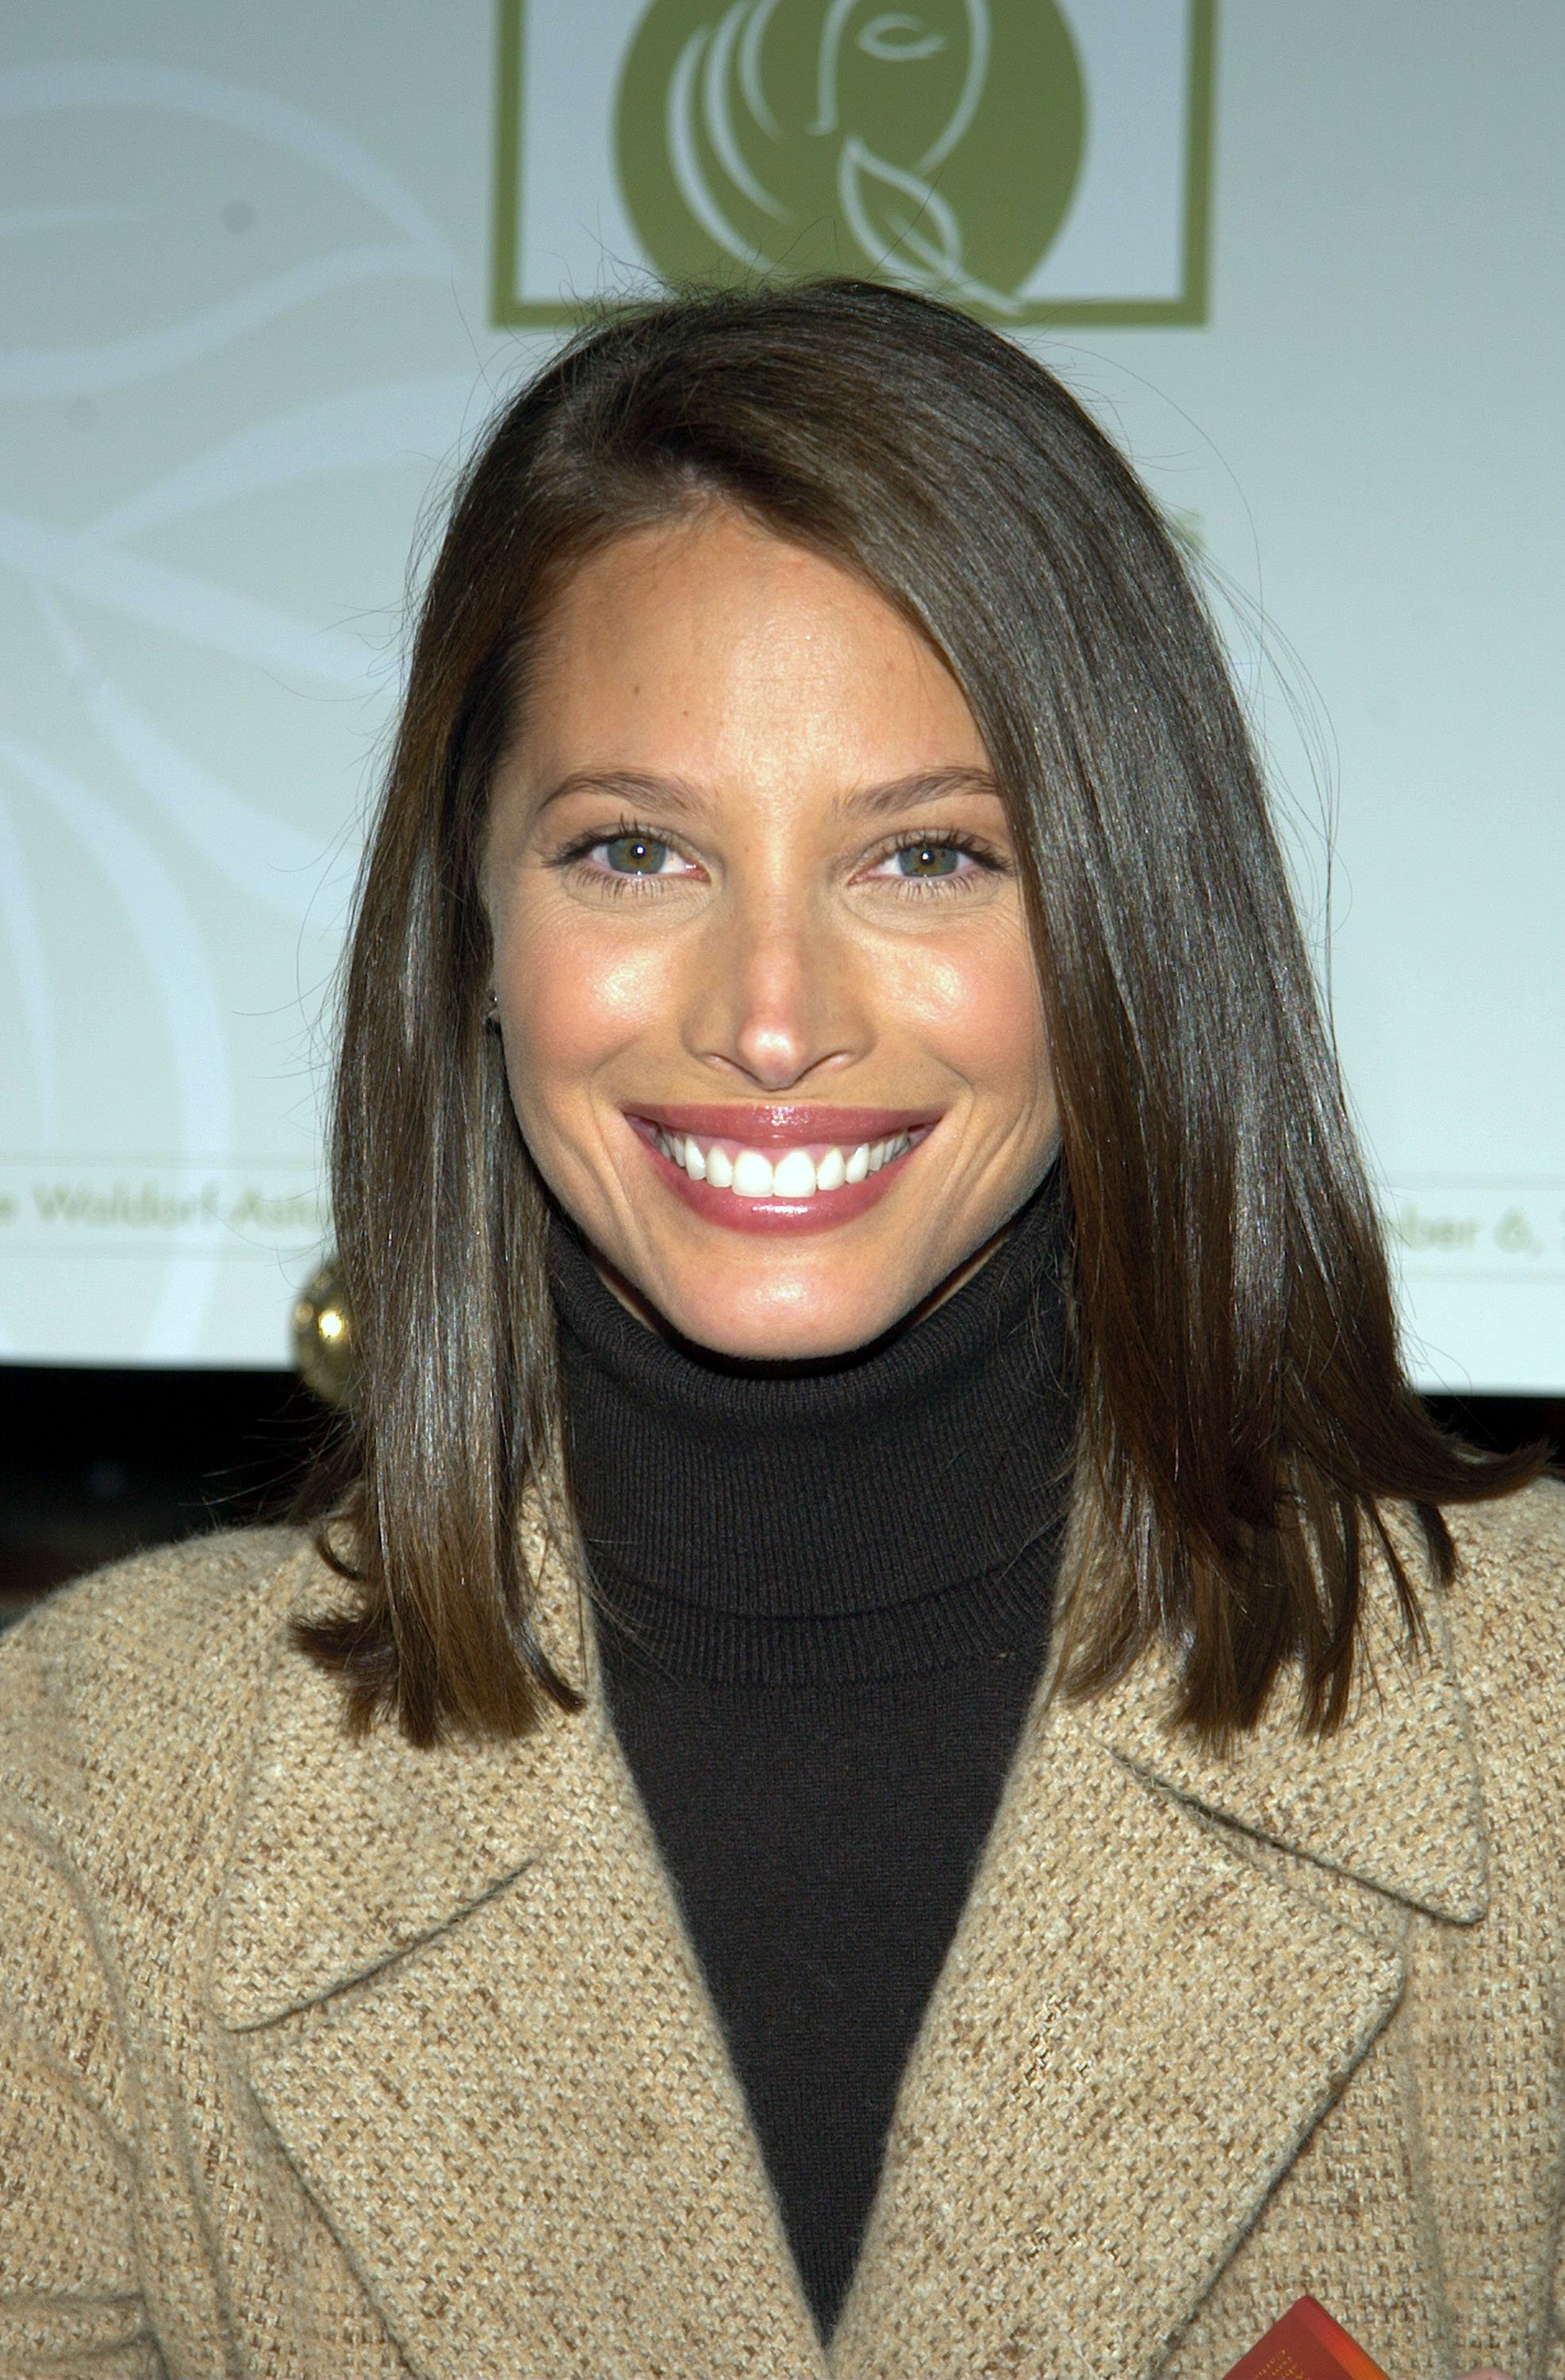 Christy Turlington appears at the Bath & Body Works Well-Being Summit November 6, 2002, at the Waldorf-Astoria hotel in New York City. | Source: Getty Images.